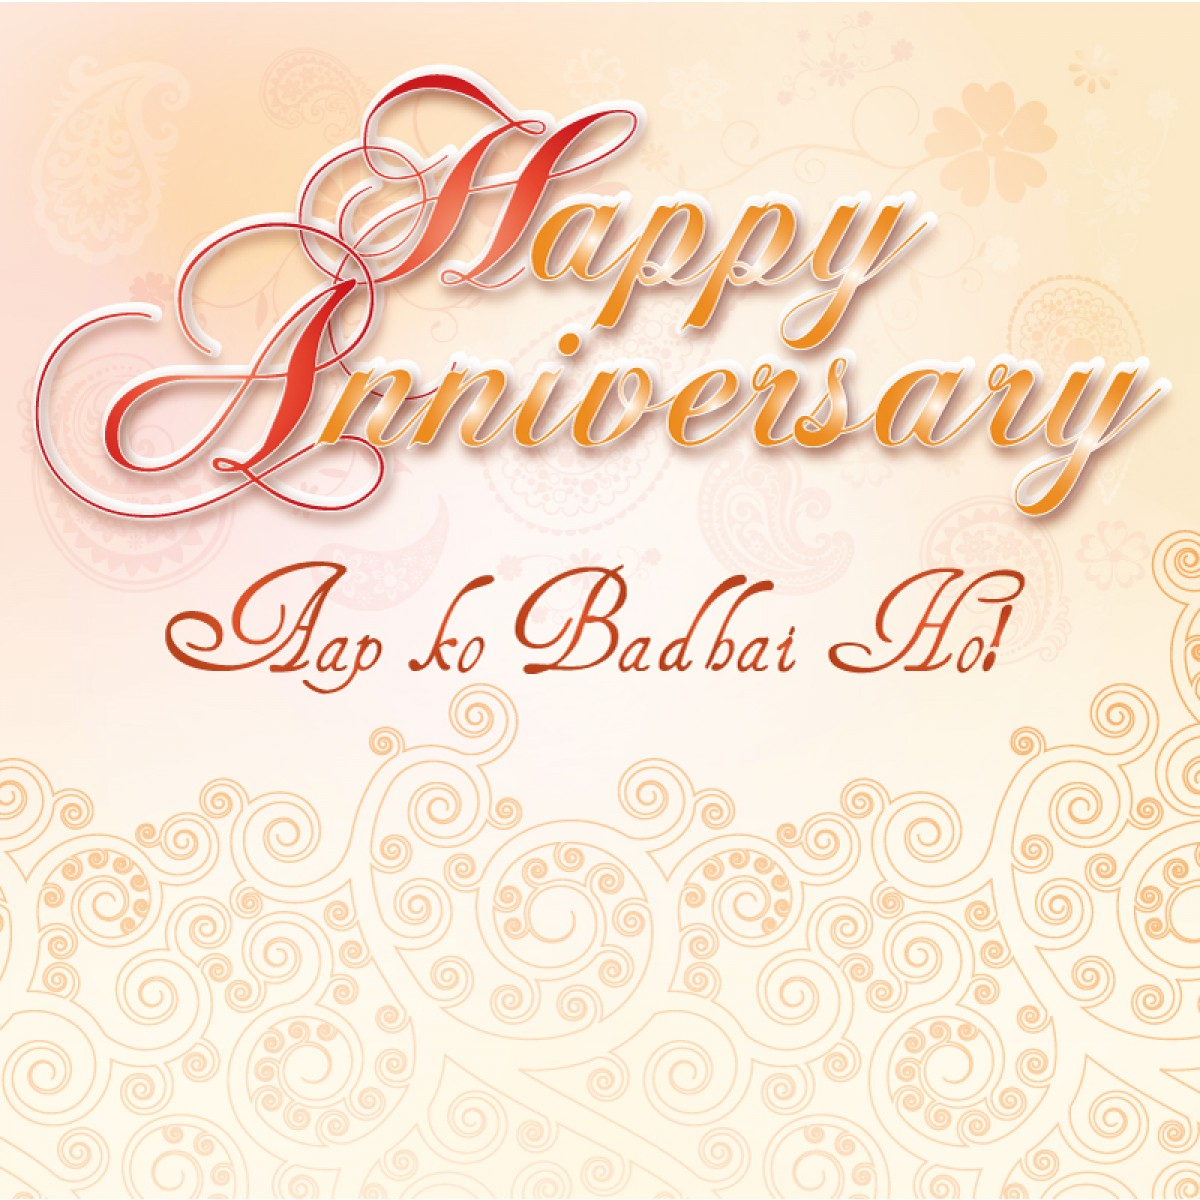 Wedding Anniversary Gifts For Sister India : Indian Dulhan Wedding Anniversary Wallpaper Free Wallpapers - pdfcast ...